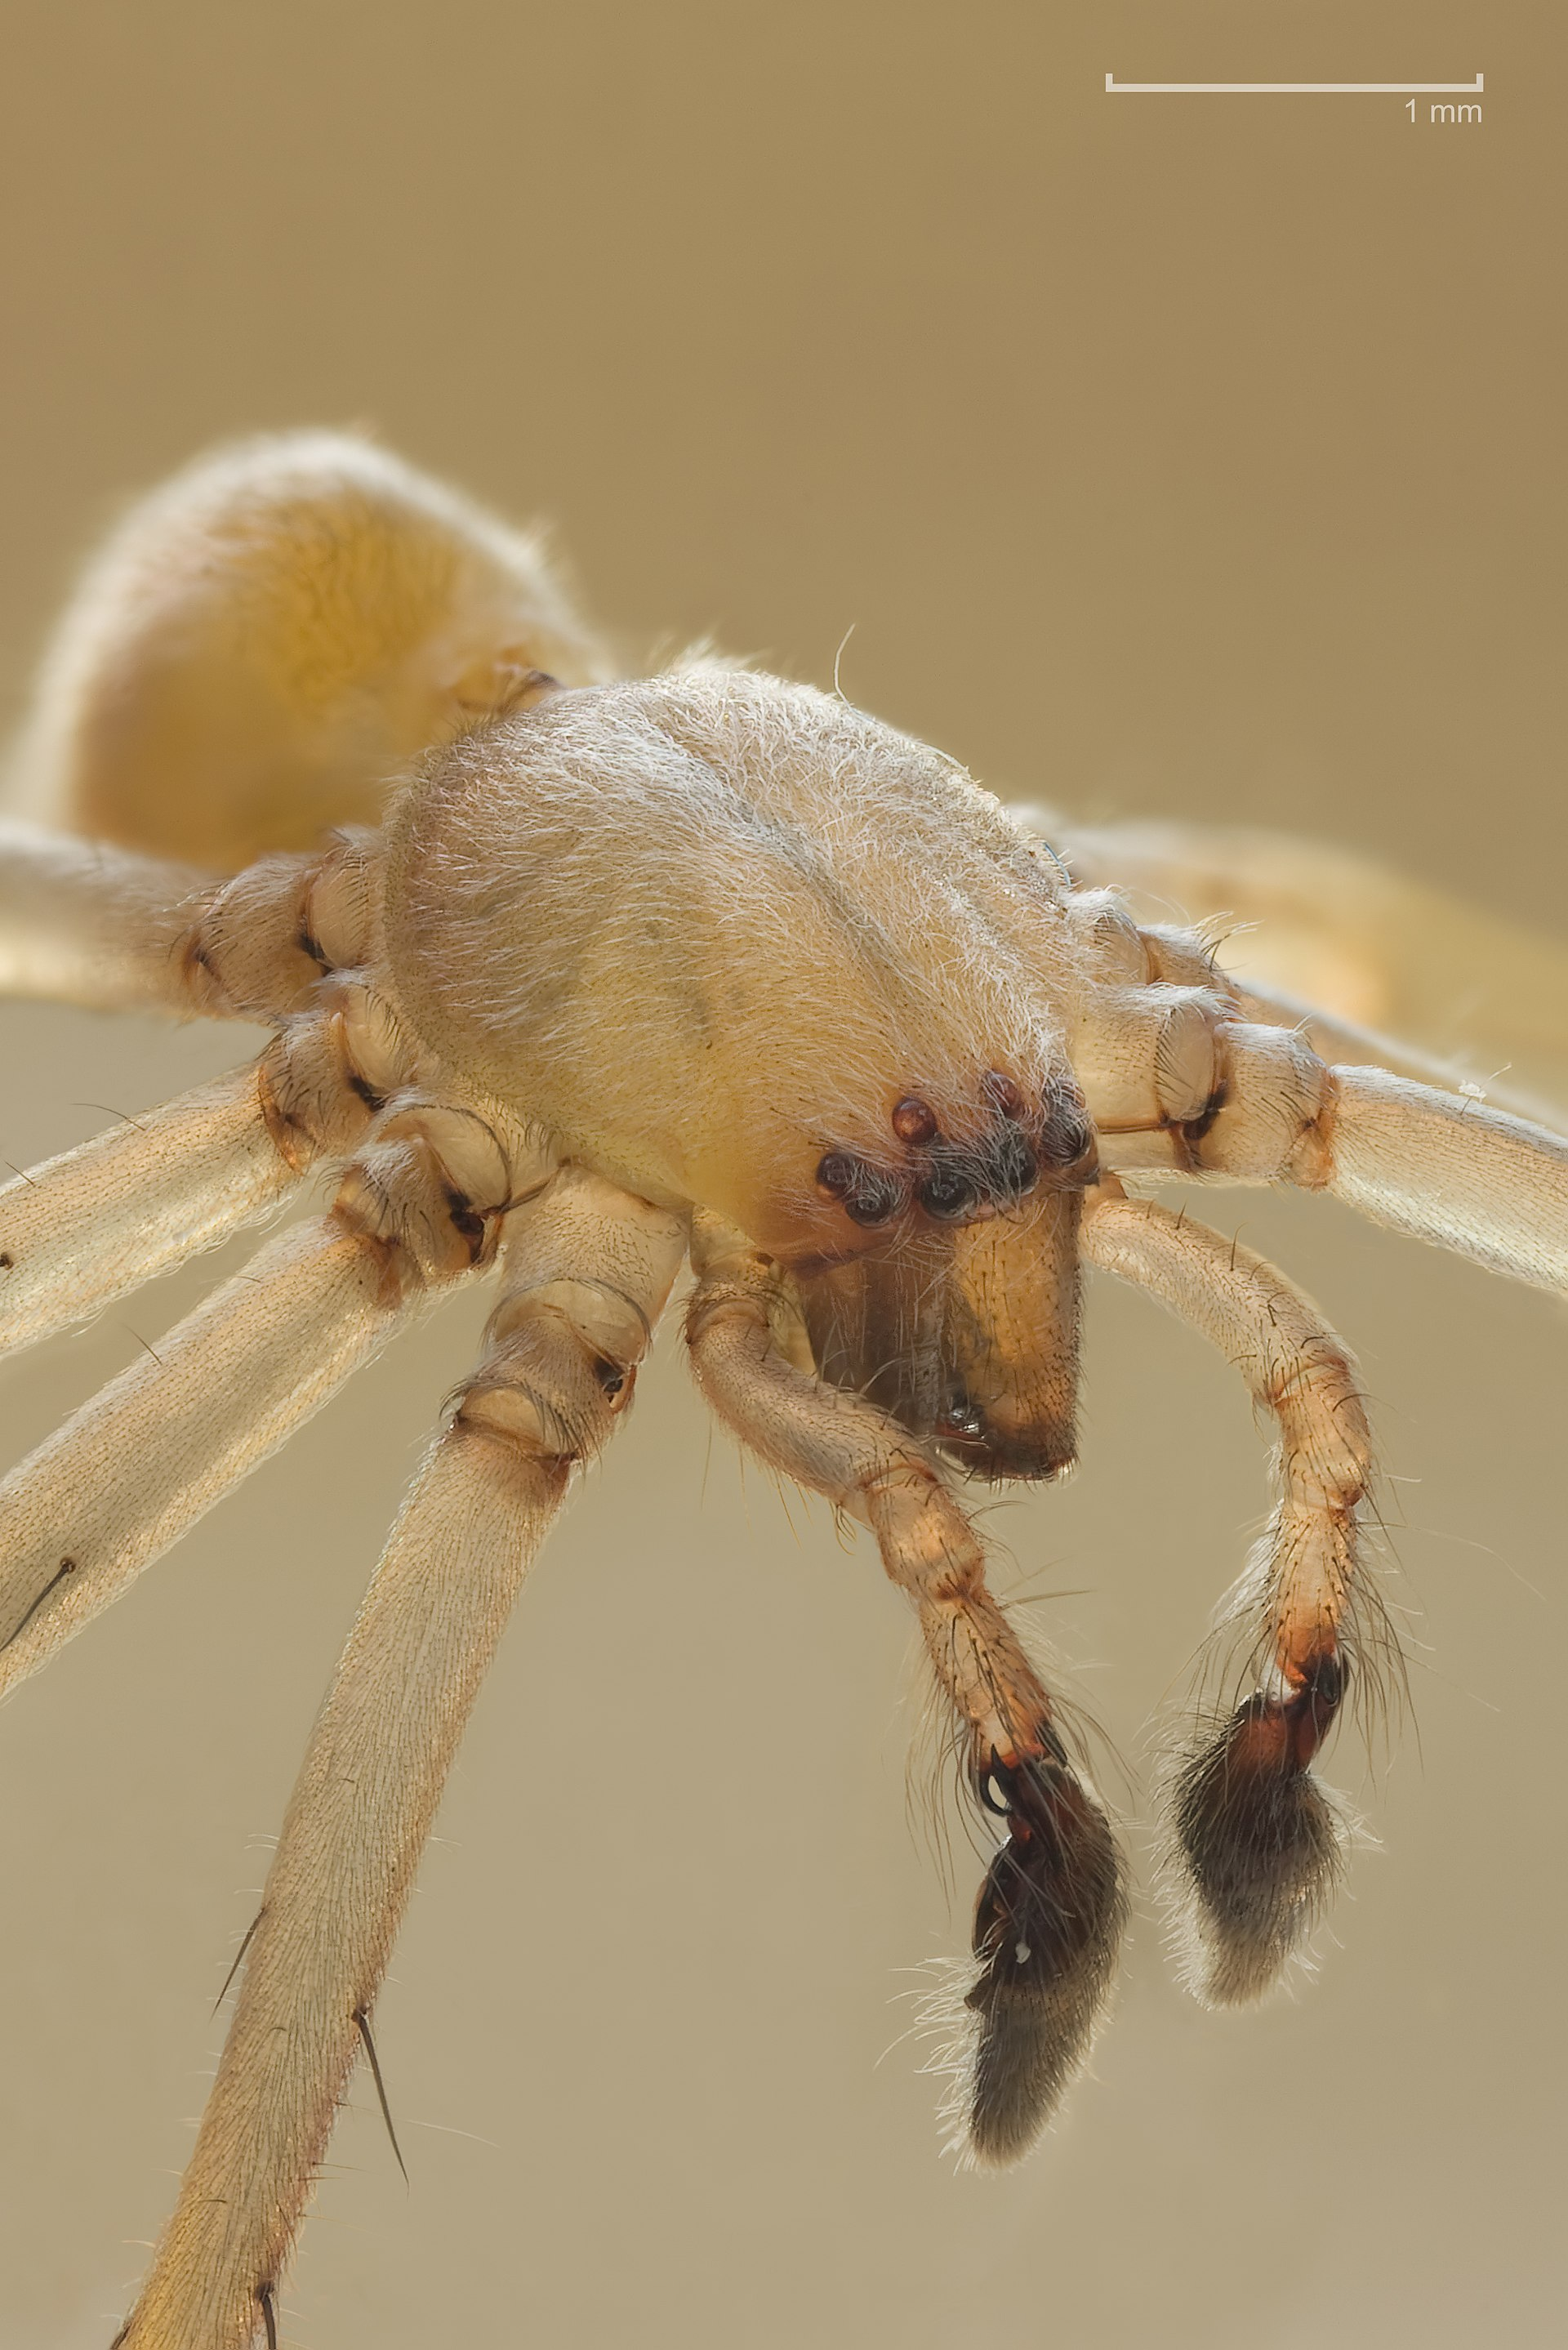 House spider - Wikipedia